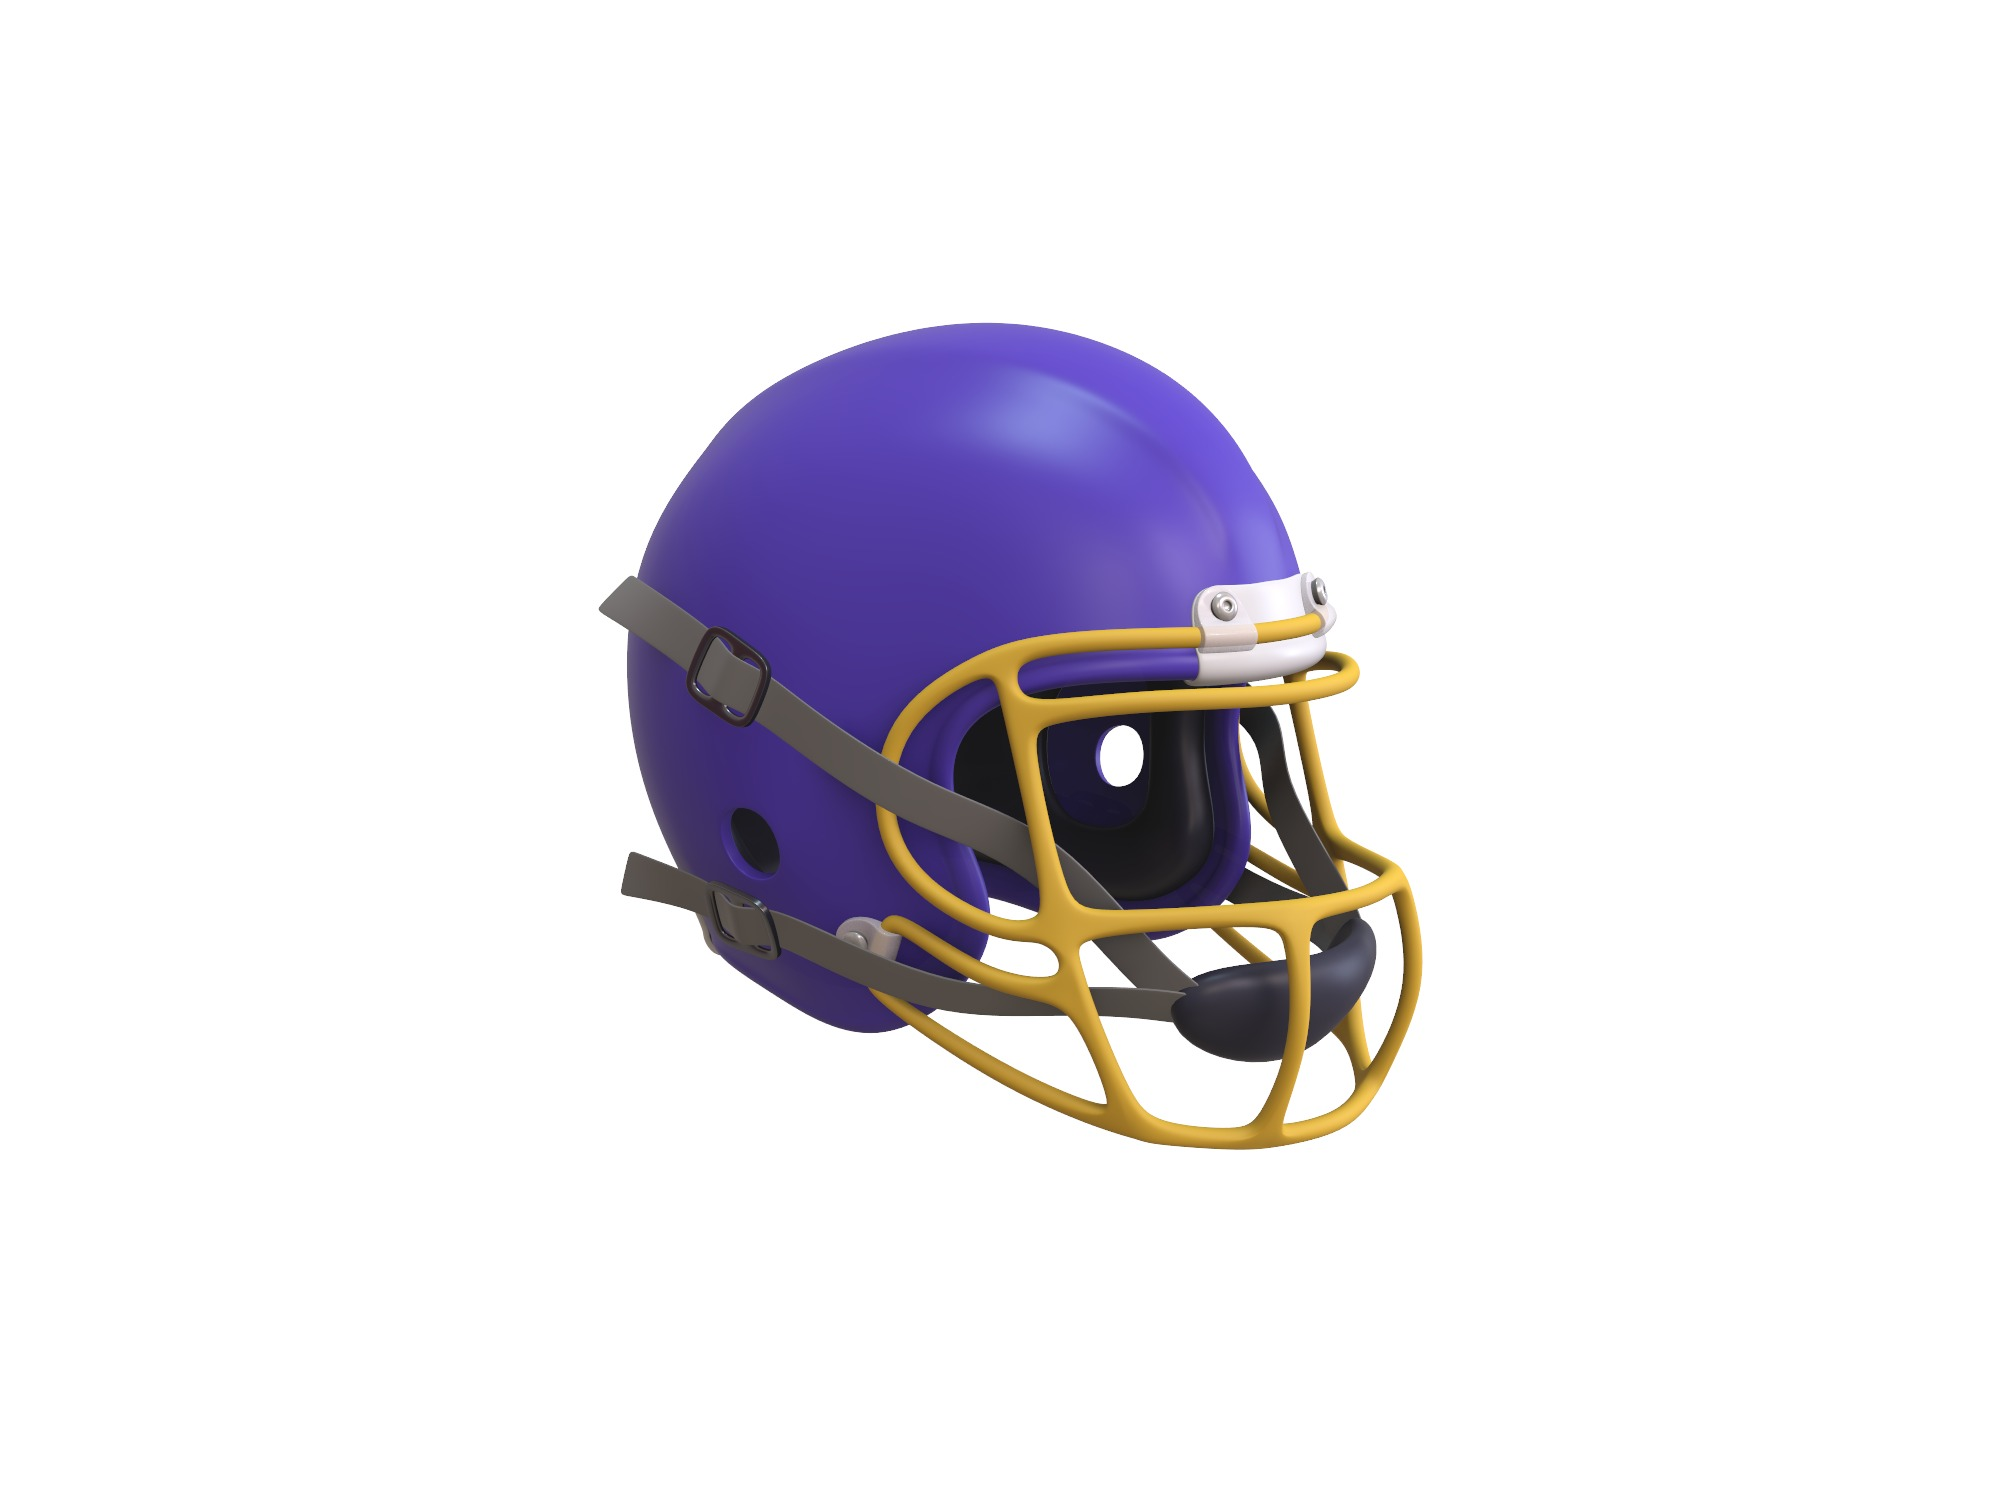 NFL Helmet - 3D design by assets Jun 3, 2018